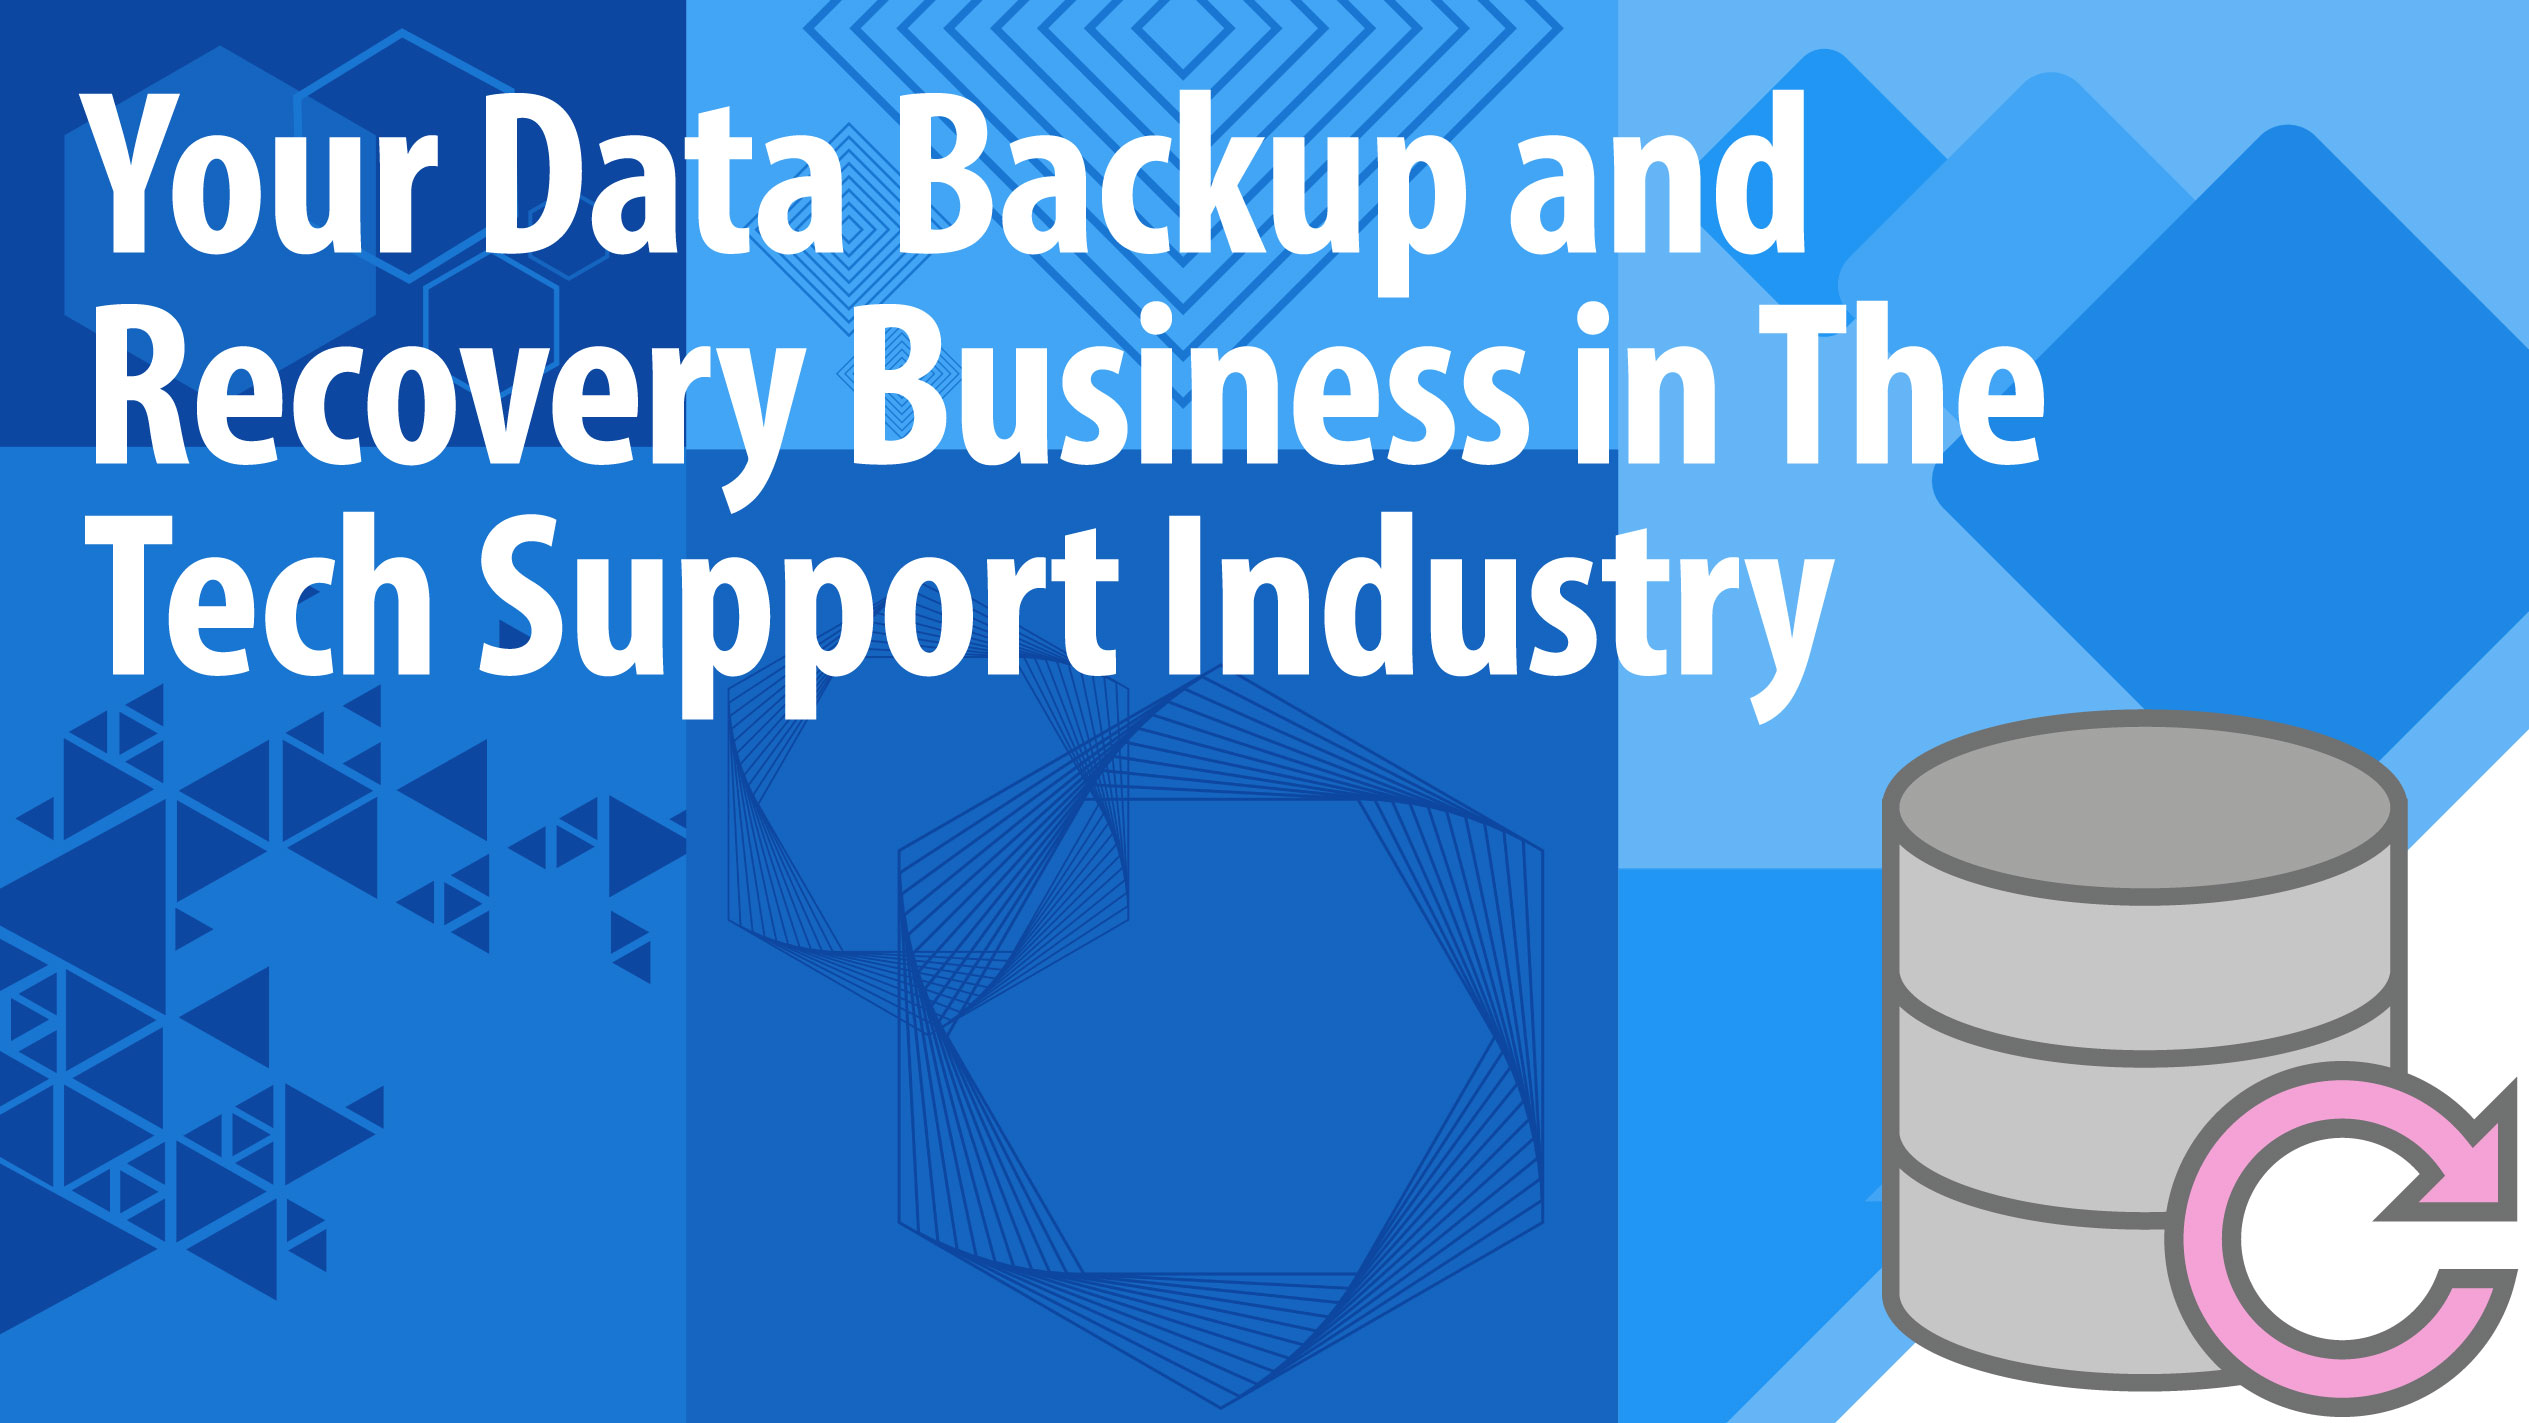 Your Data Backup and Recovery Business in The Tech Support Industry